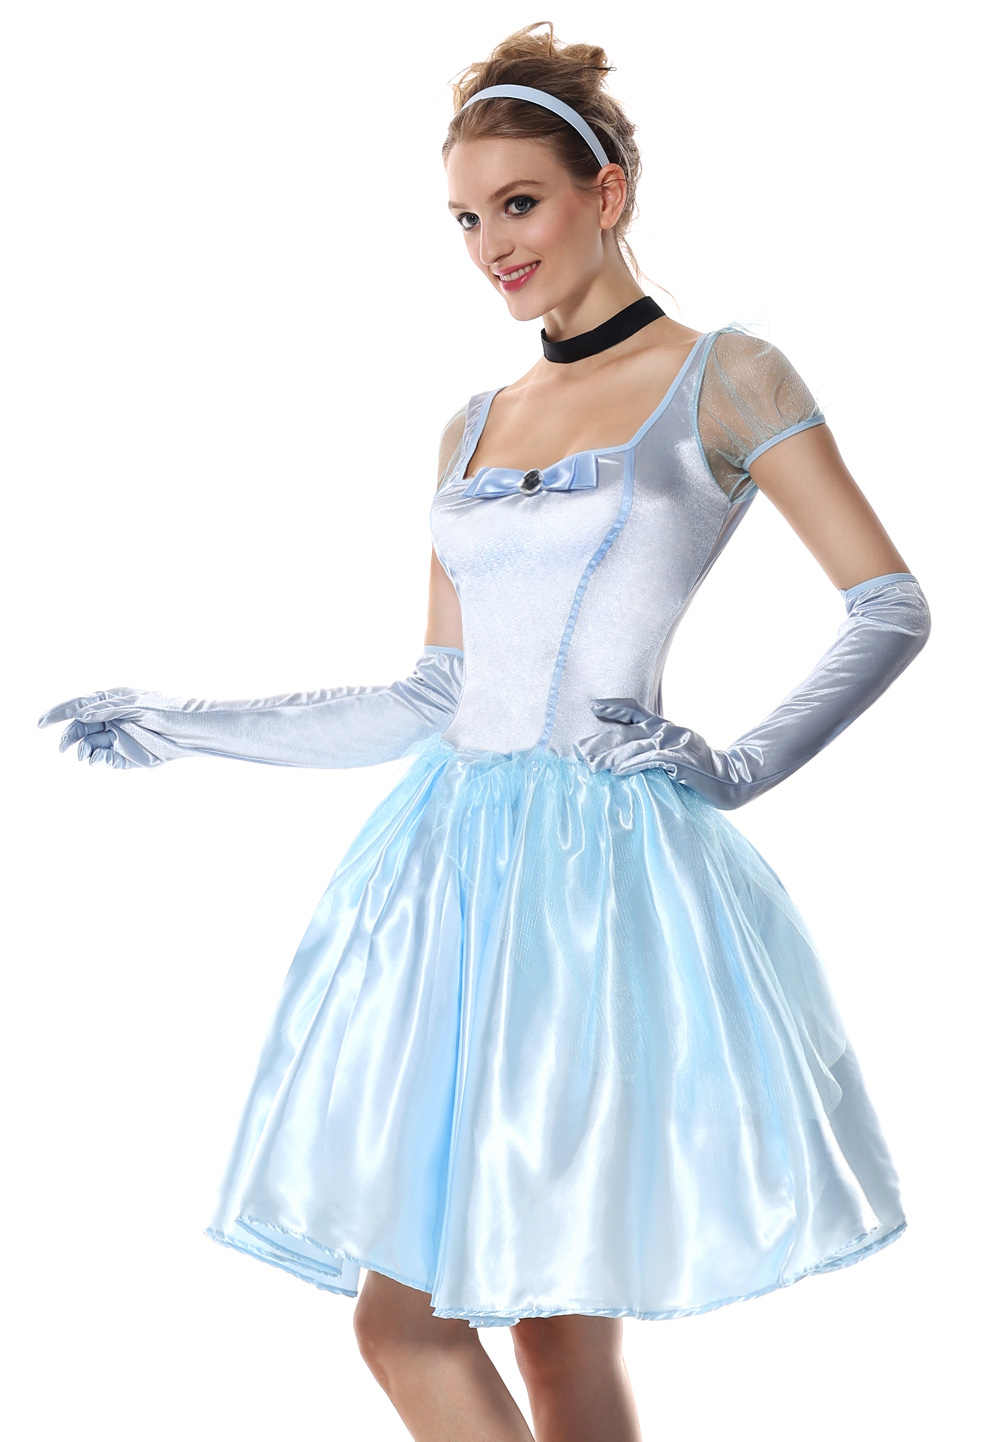 d977004136b3 ... Sexy Princess Cinderella Costume Halloween Party Cinderella Costumes  Adult Women Fairy Tale Cosplay Game Fancy Dresses ...